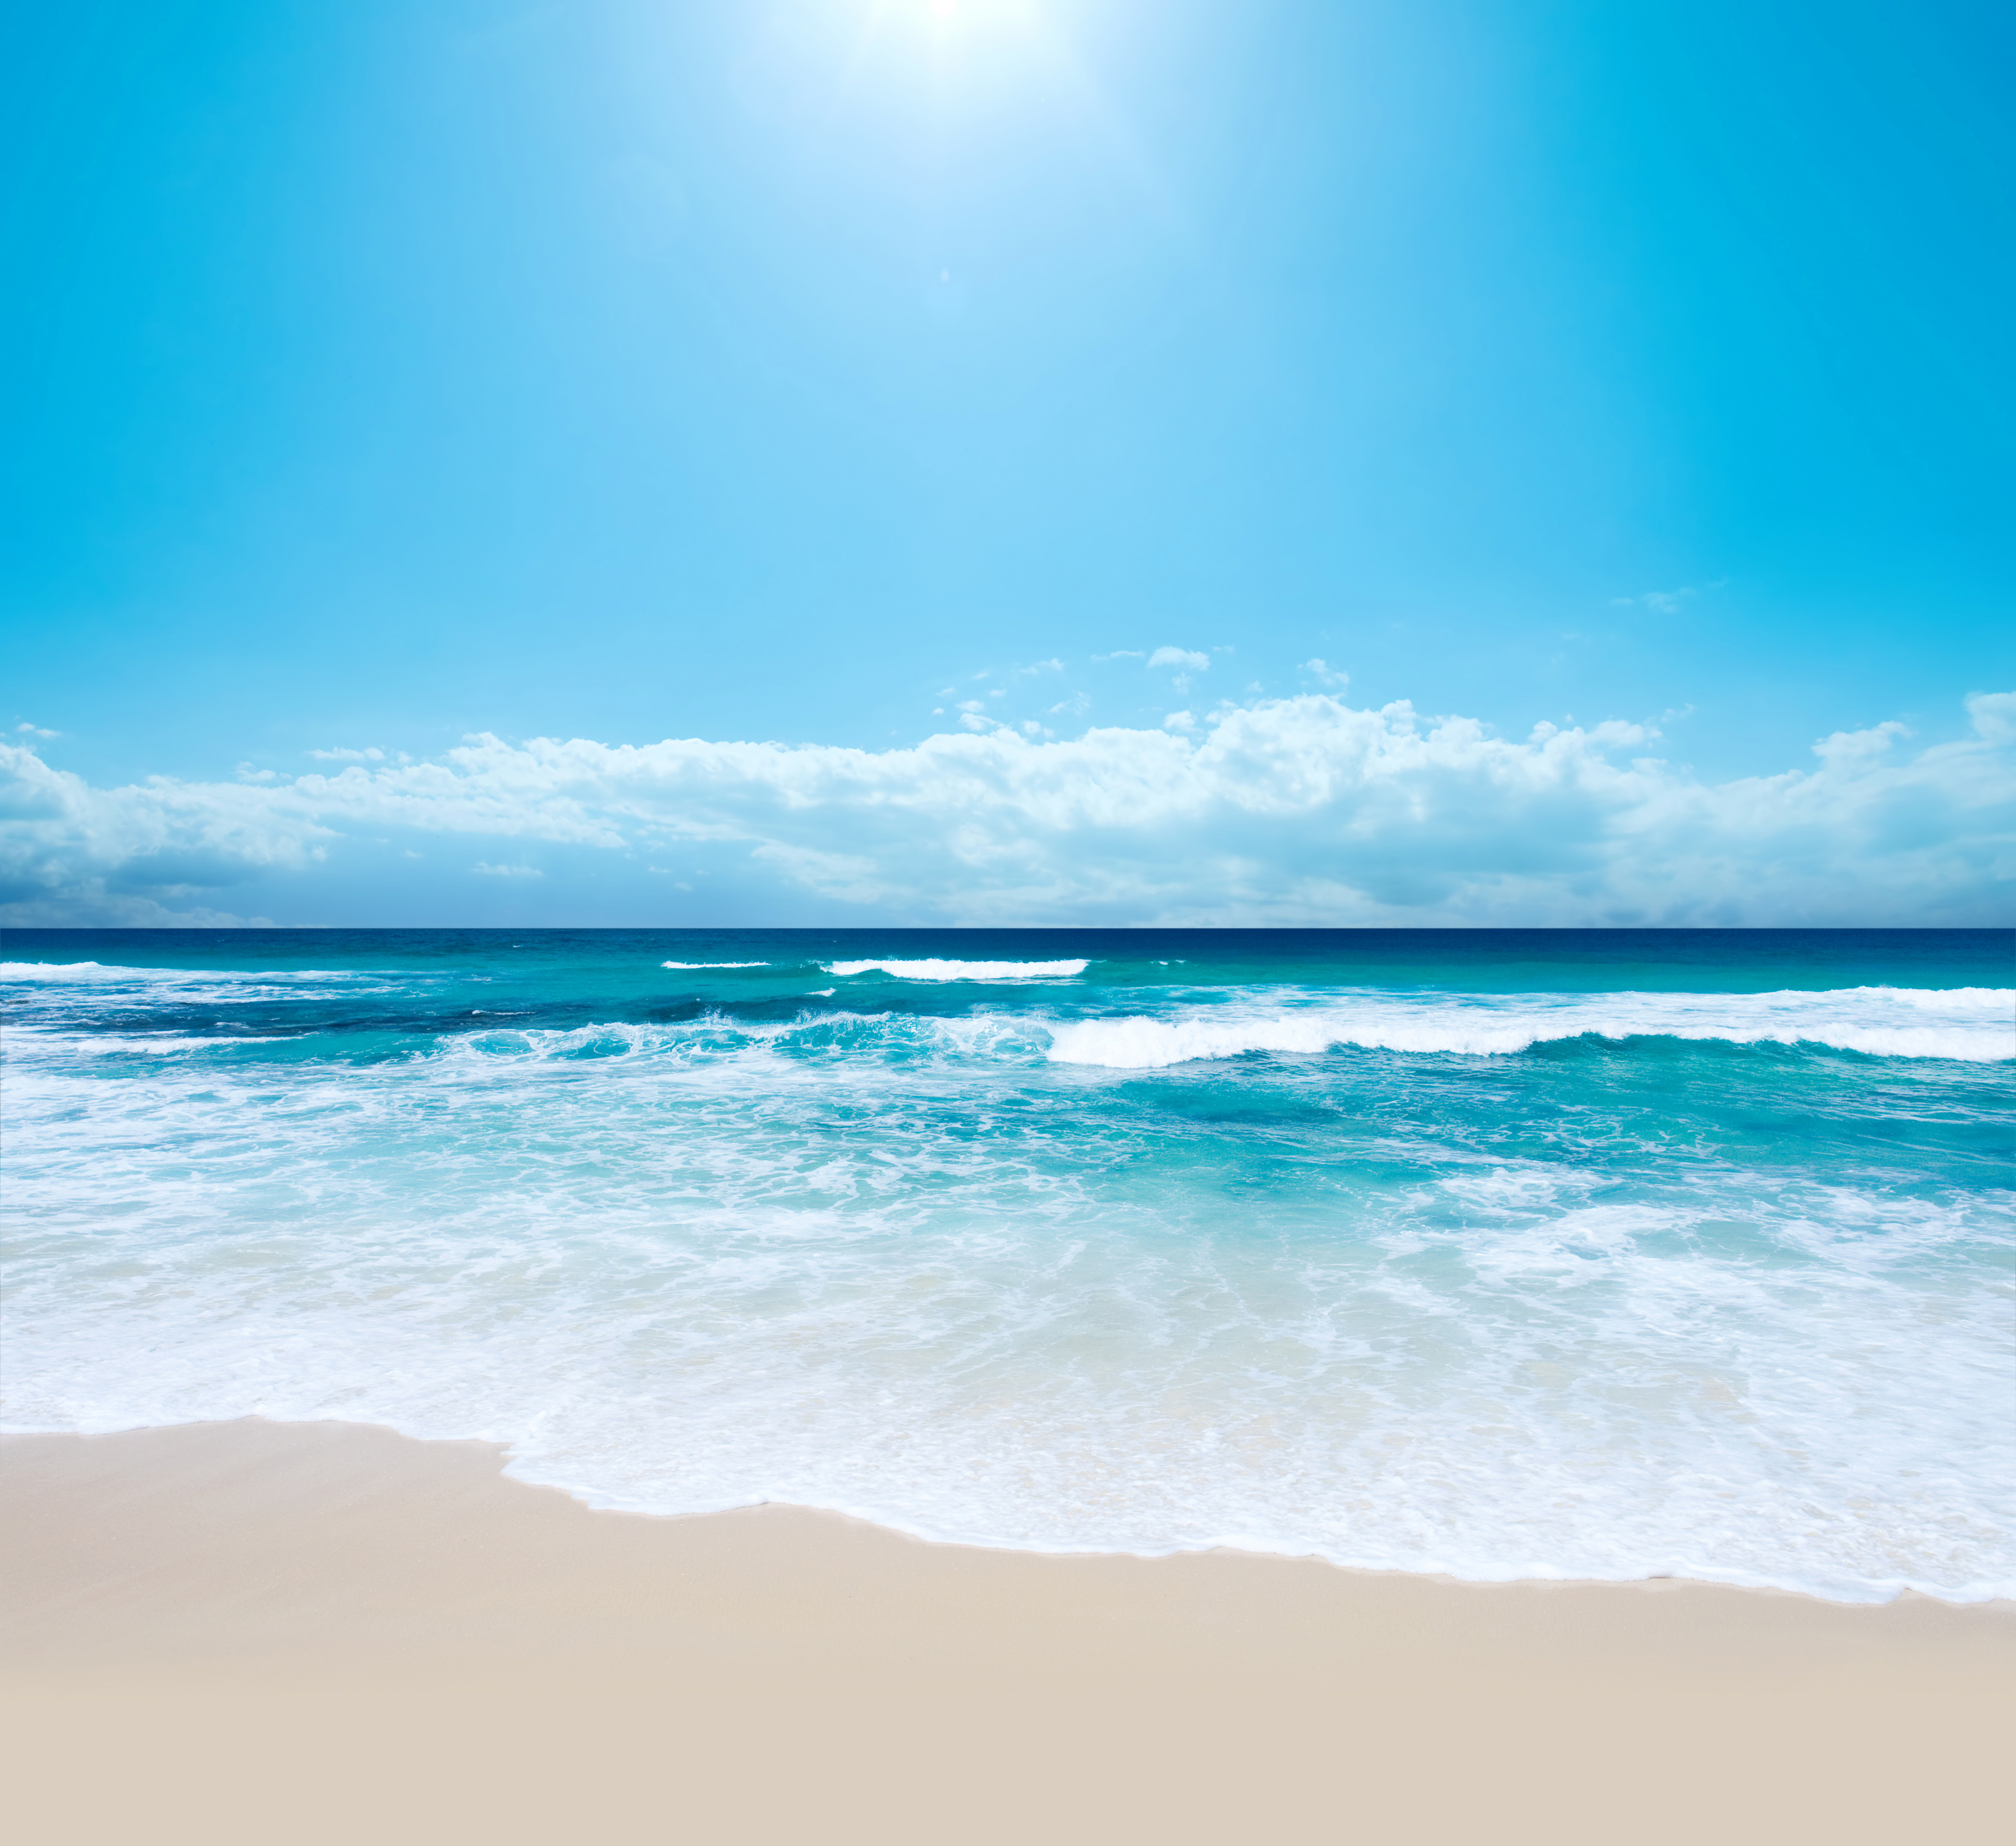 Background Sea Beach | Gallery Yopriceville - High-Quality Images ...